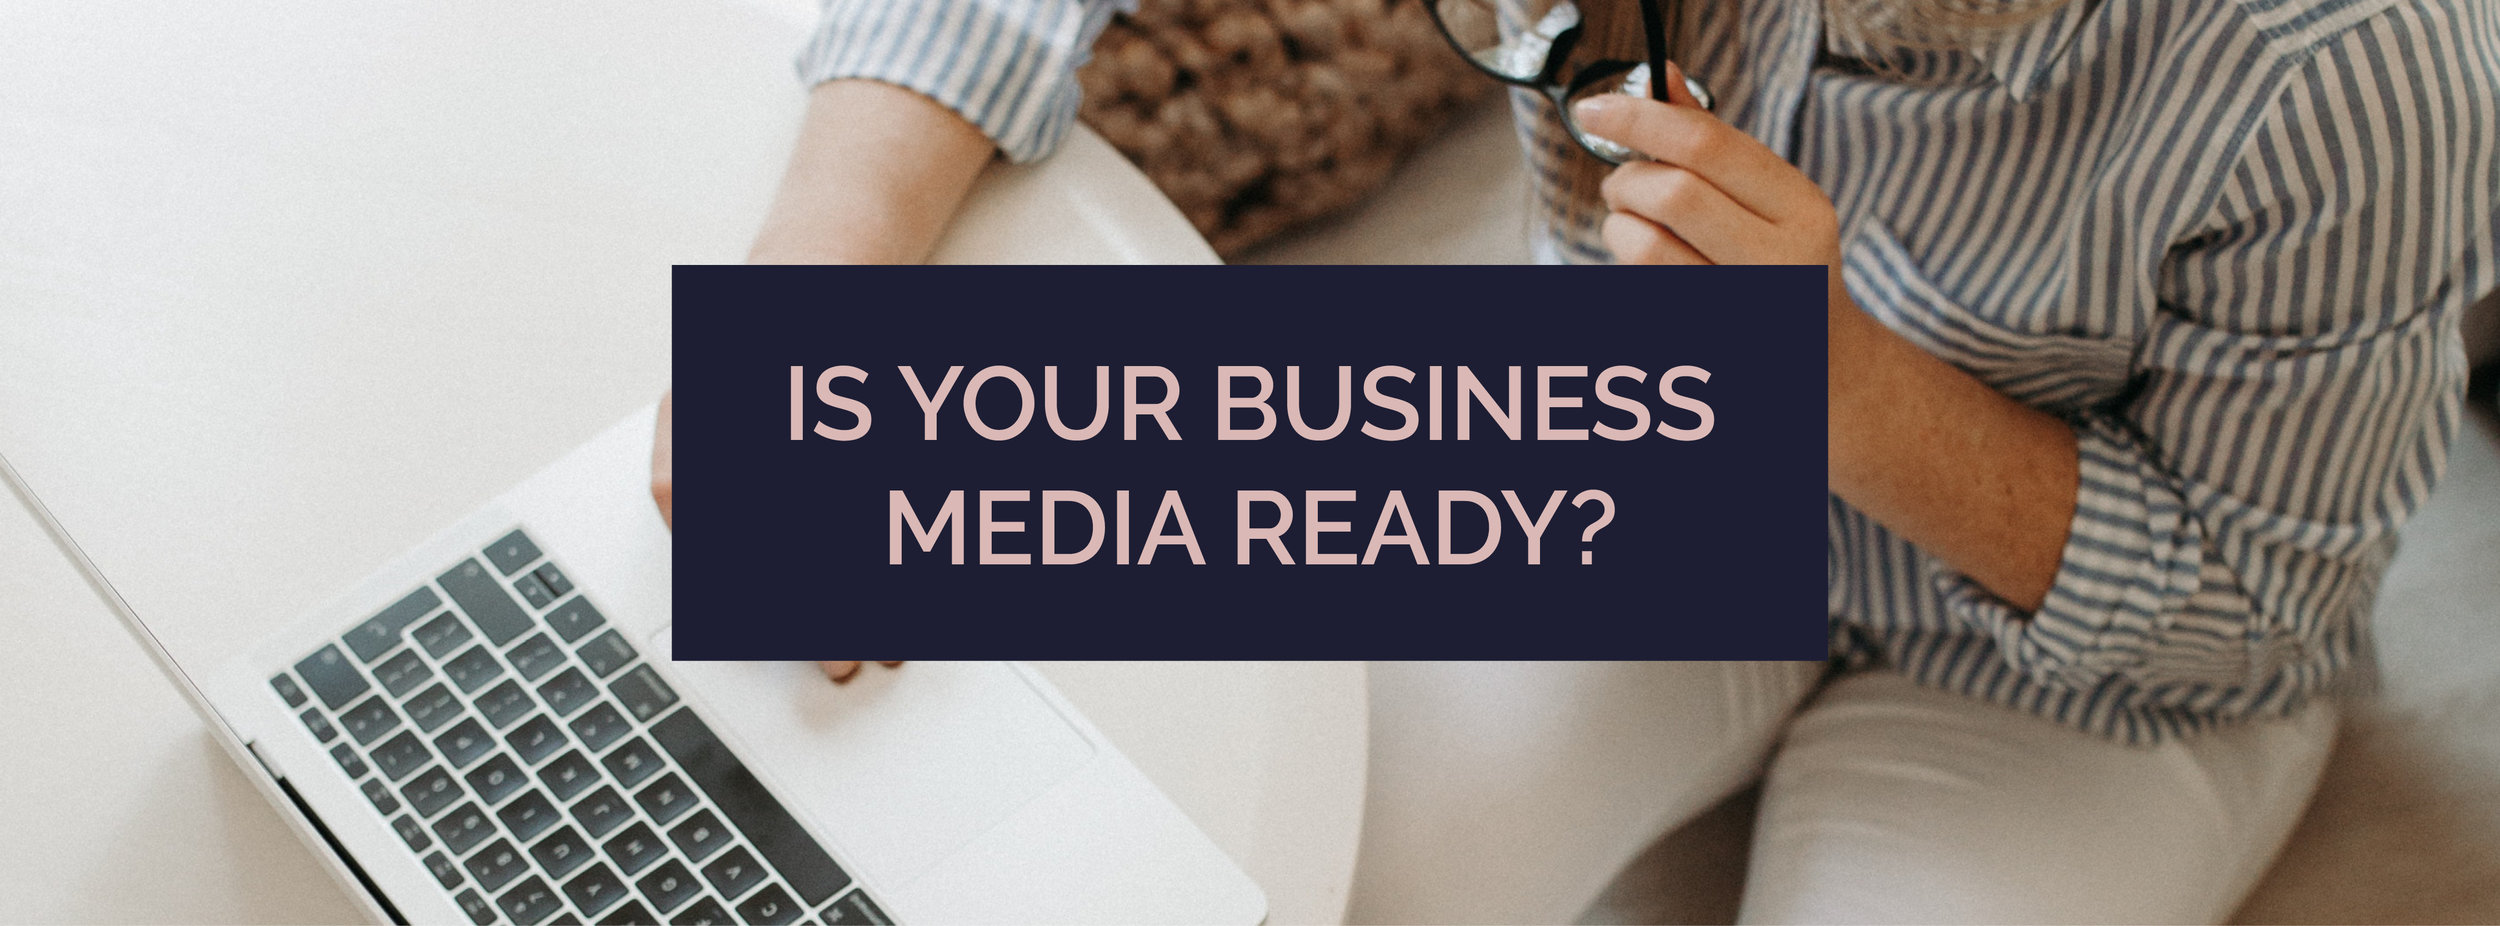 Resources - Is Your Business Media Ready - Banner.jpg